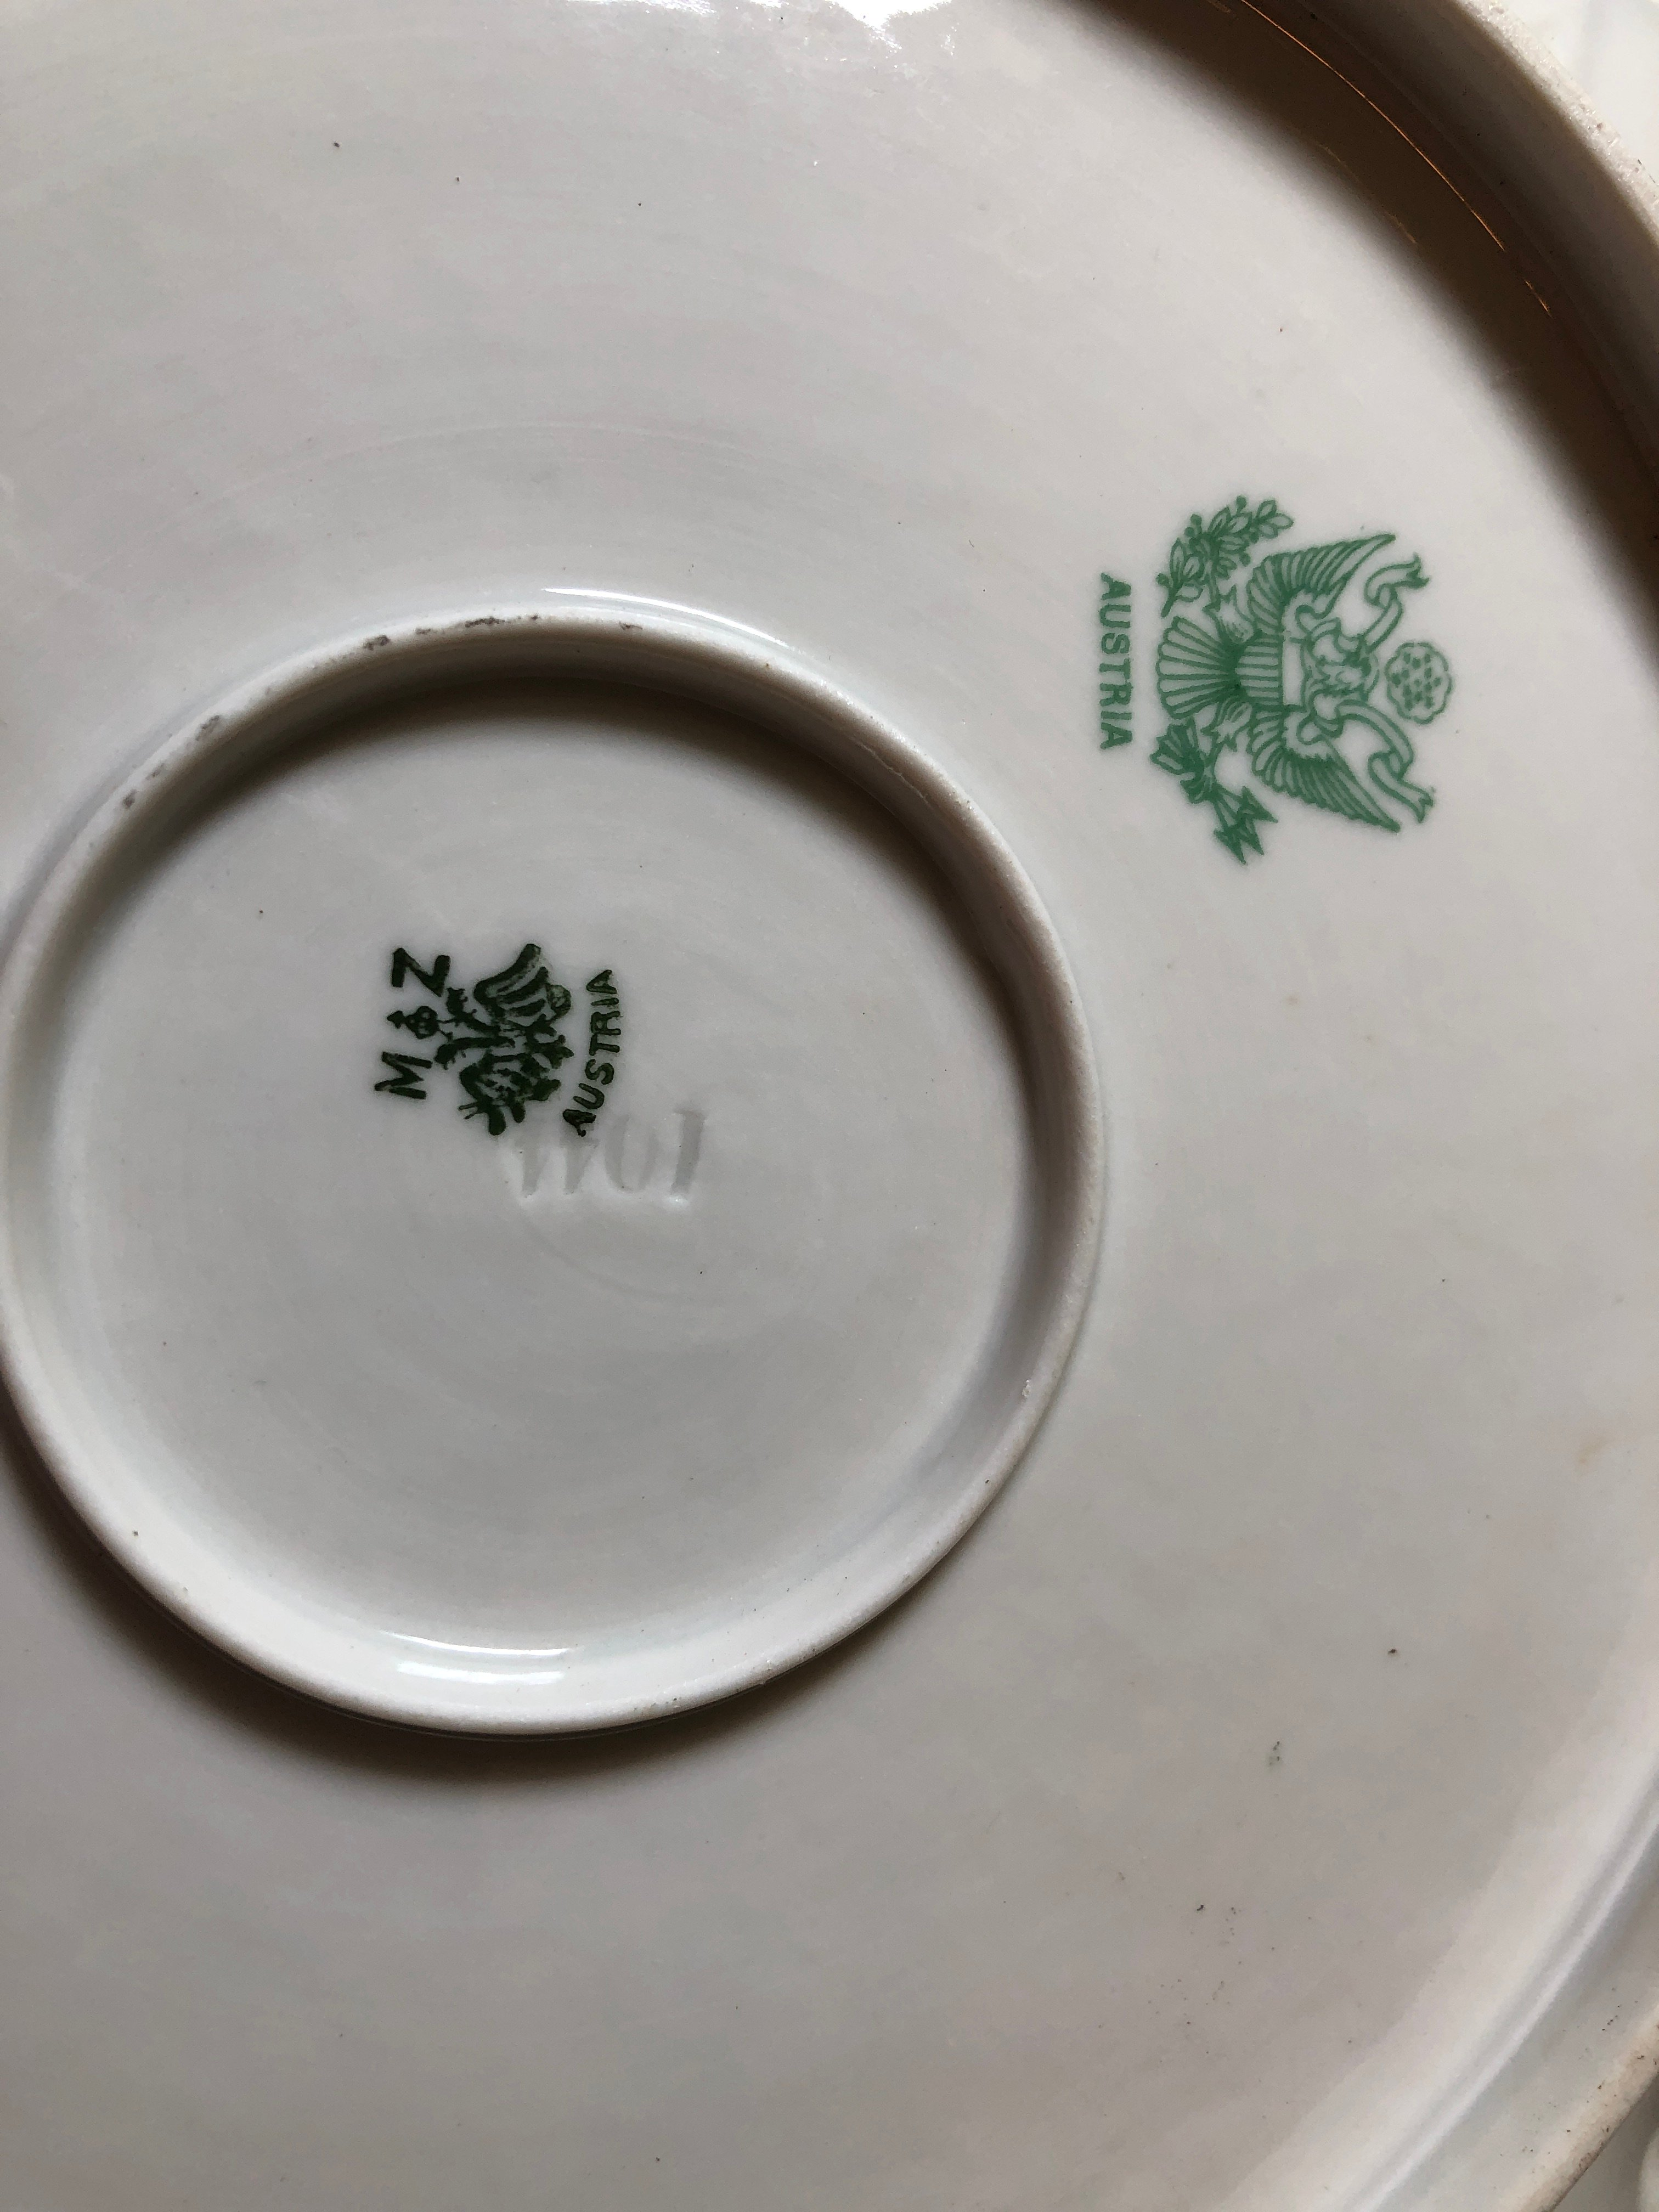 I have a plate set with double MZ Austria marks that I believe are